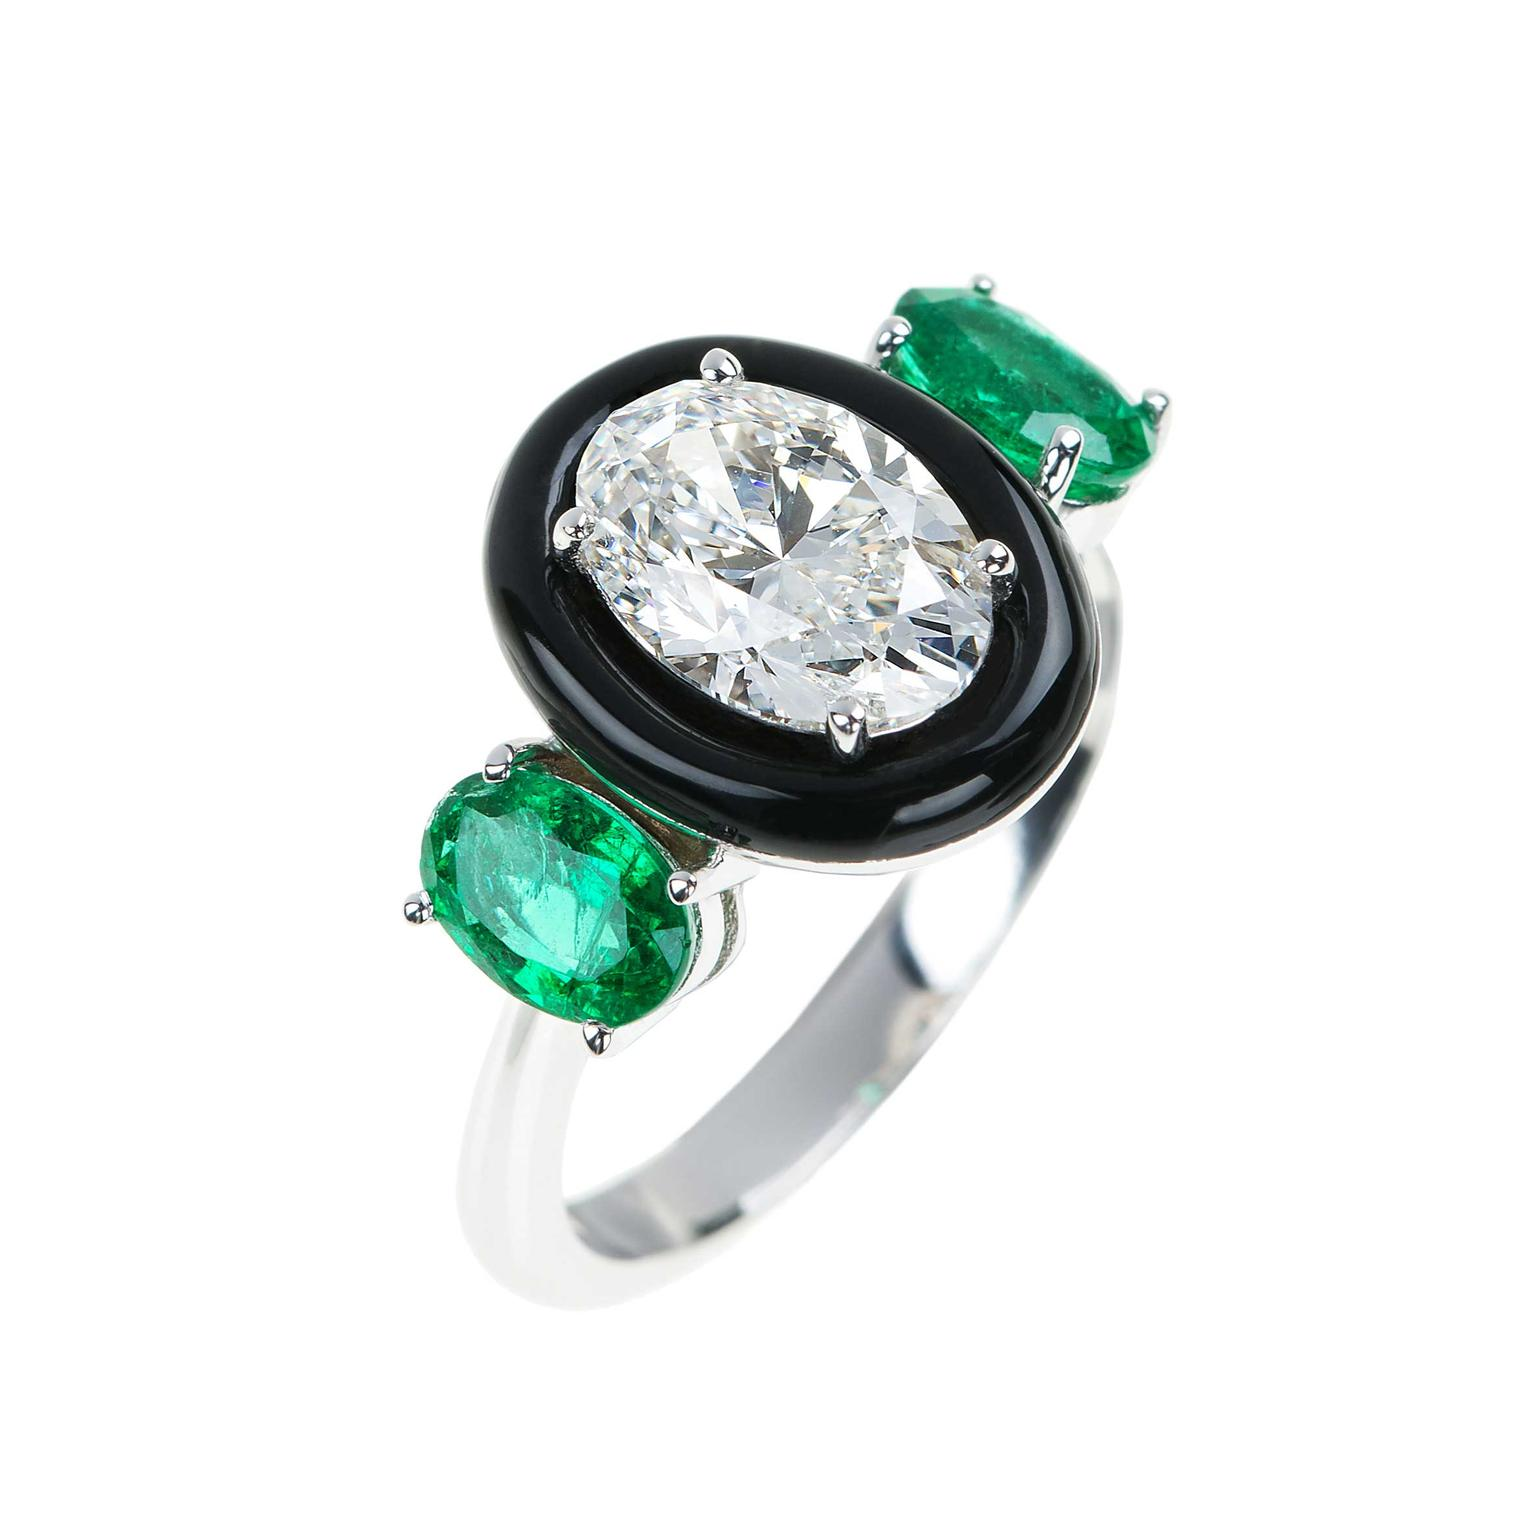 Nikos Koulis Oui emerald and diamond engagement ring